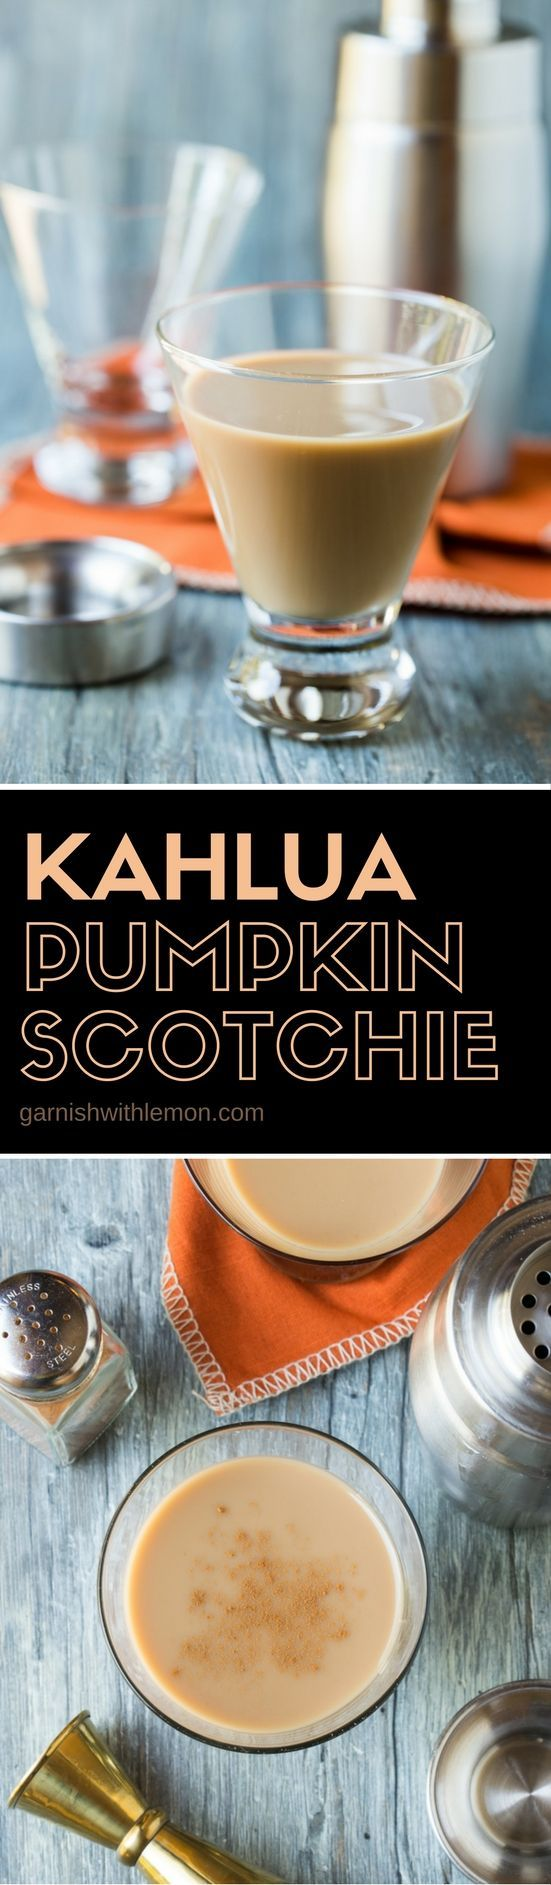 Need a new fall cocktail recipe? Try these irresistible Kahlúa Pumpkin Scotchies…